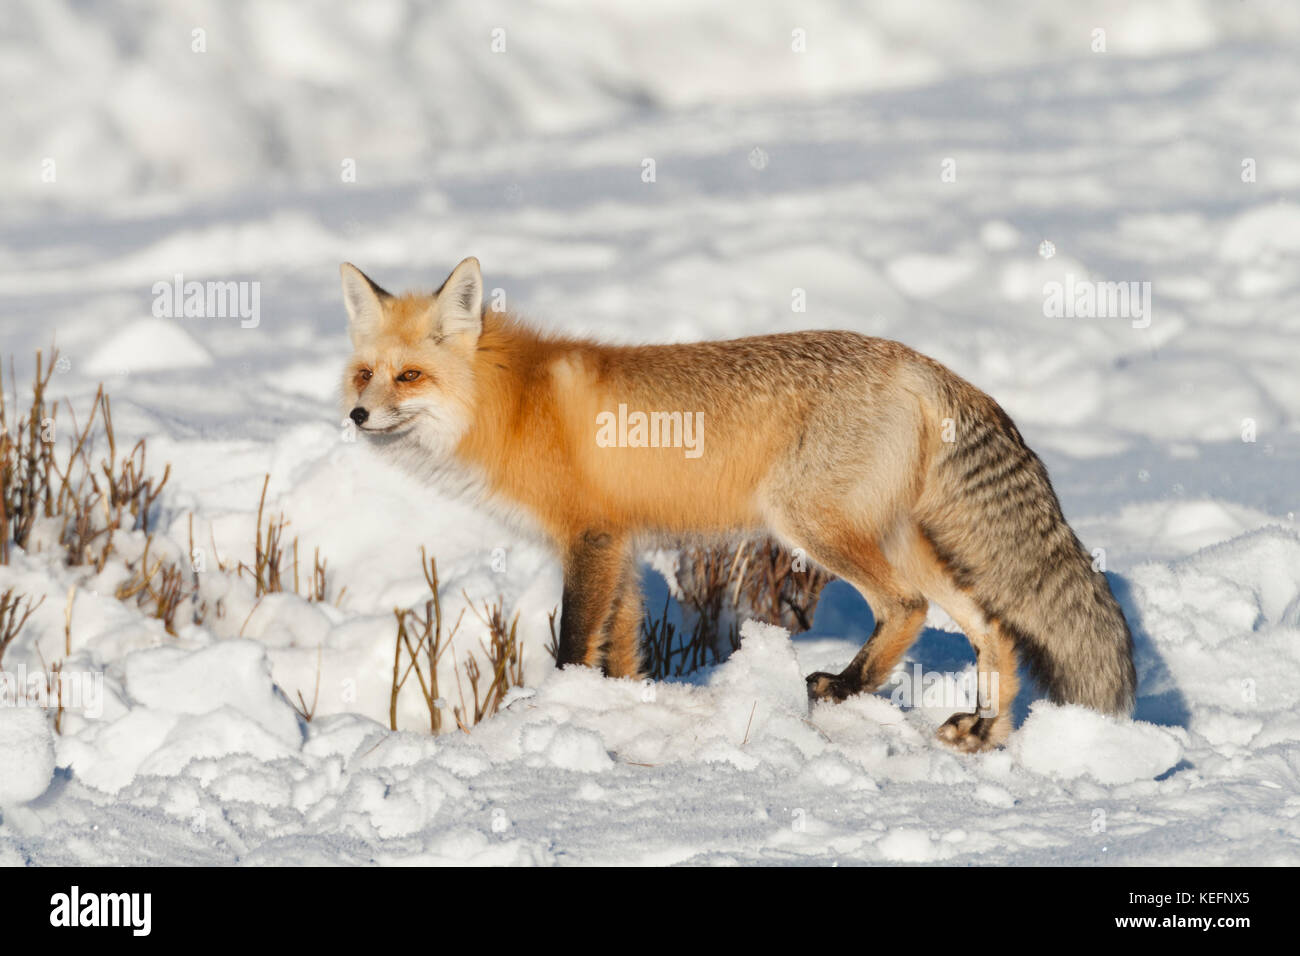 Red fox during winter with heavy fur protecting it from the bitter cold in Yellowstone National Park, Wyoming - Stock Image